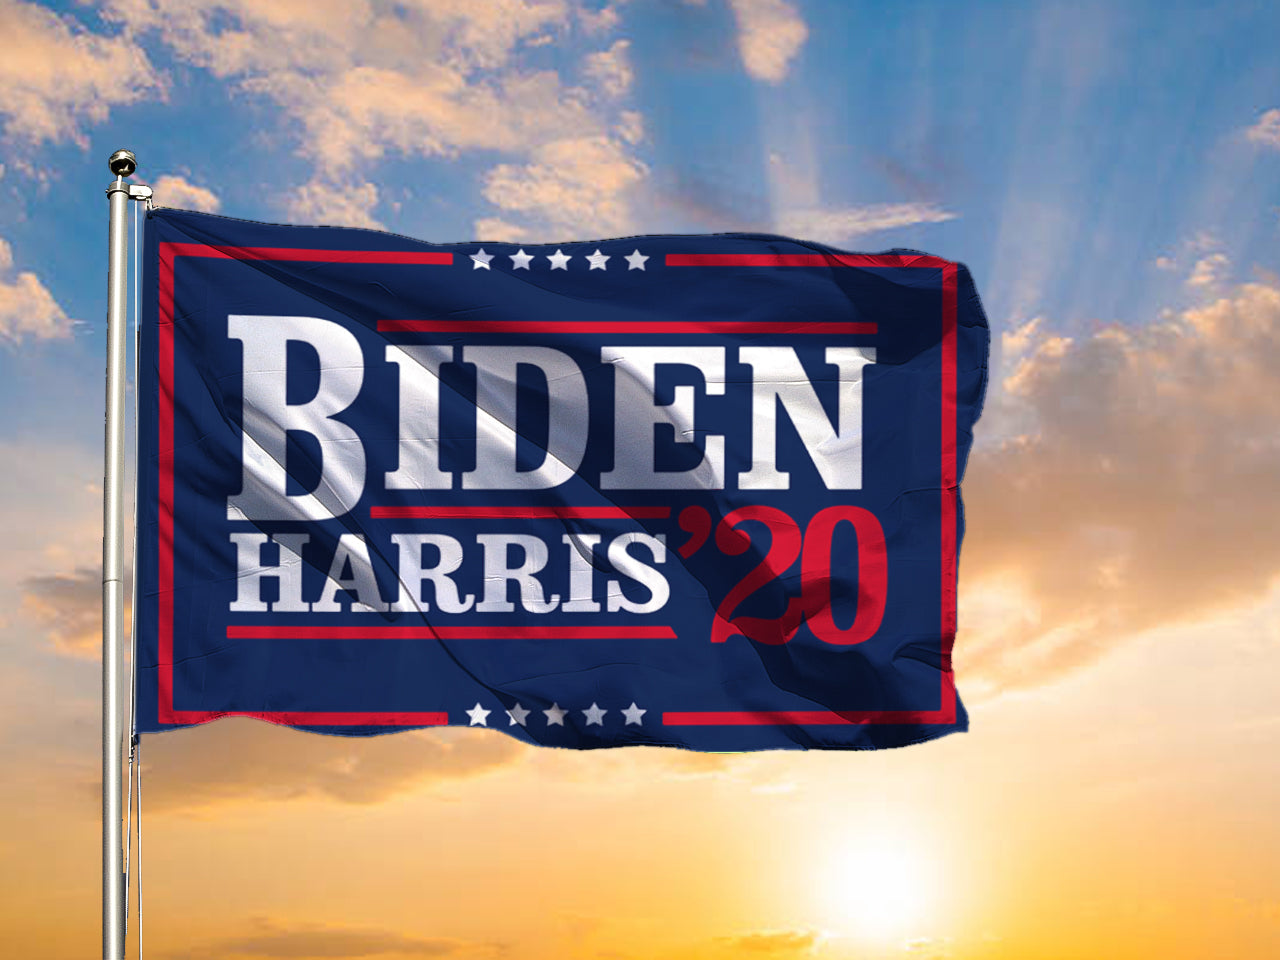 Biden Harris 2020 Flags Vote For Joe Biden For President 2020 Outdoor Decoration